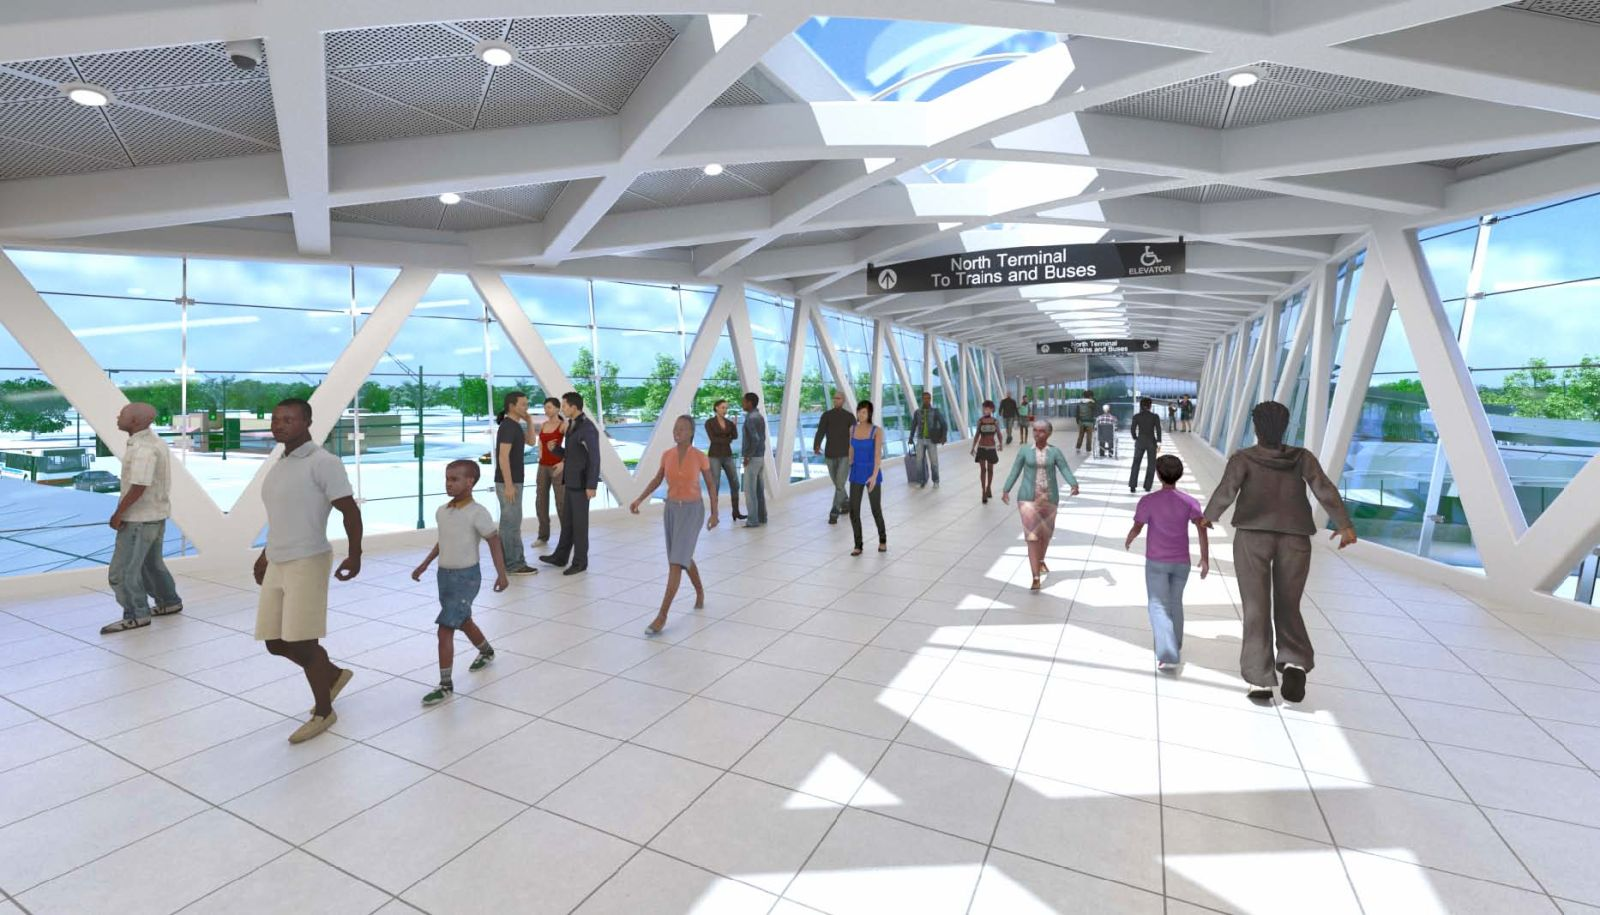 06-Renovations-of-the-95th/Dan-Ryan-Terminal-Station